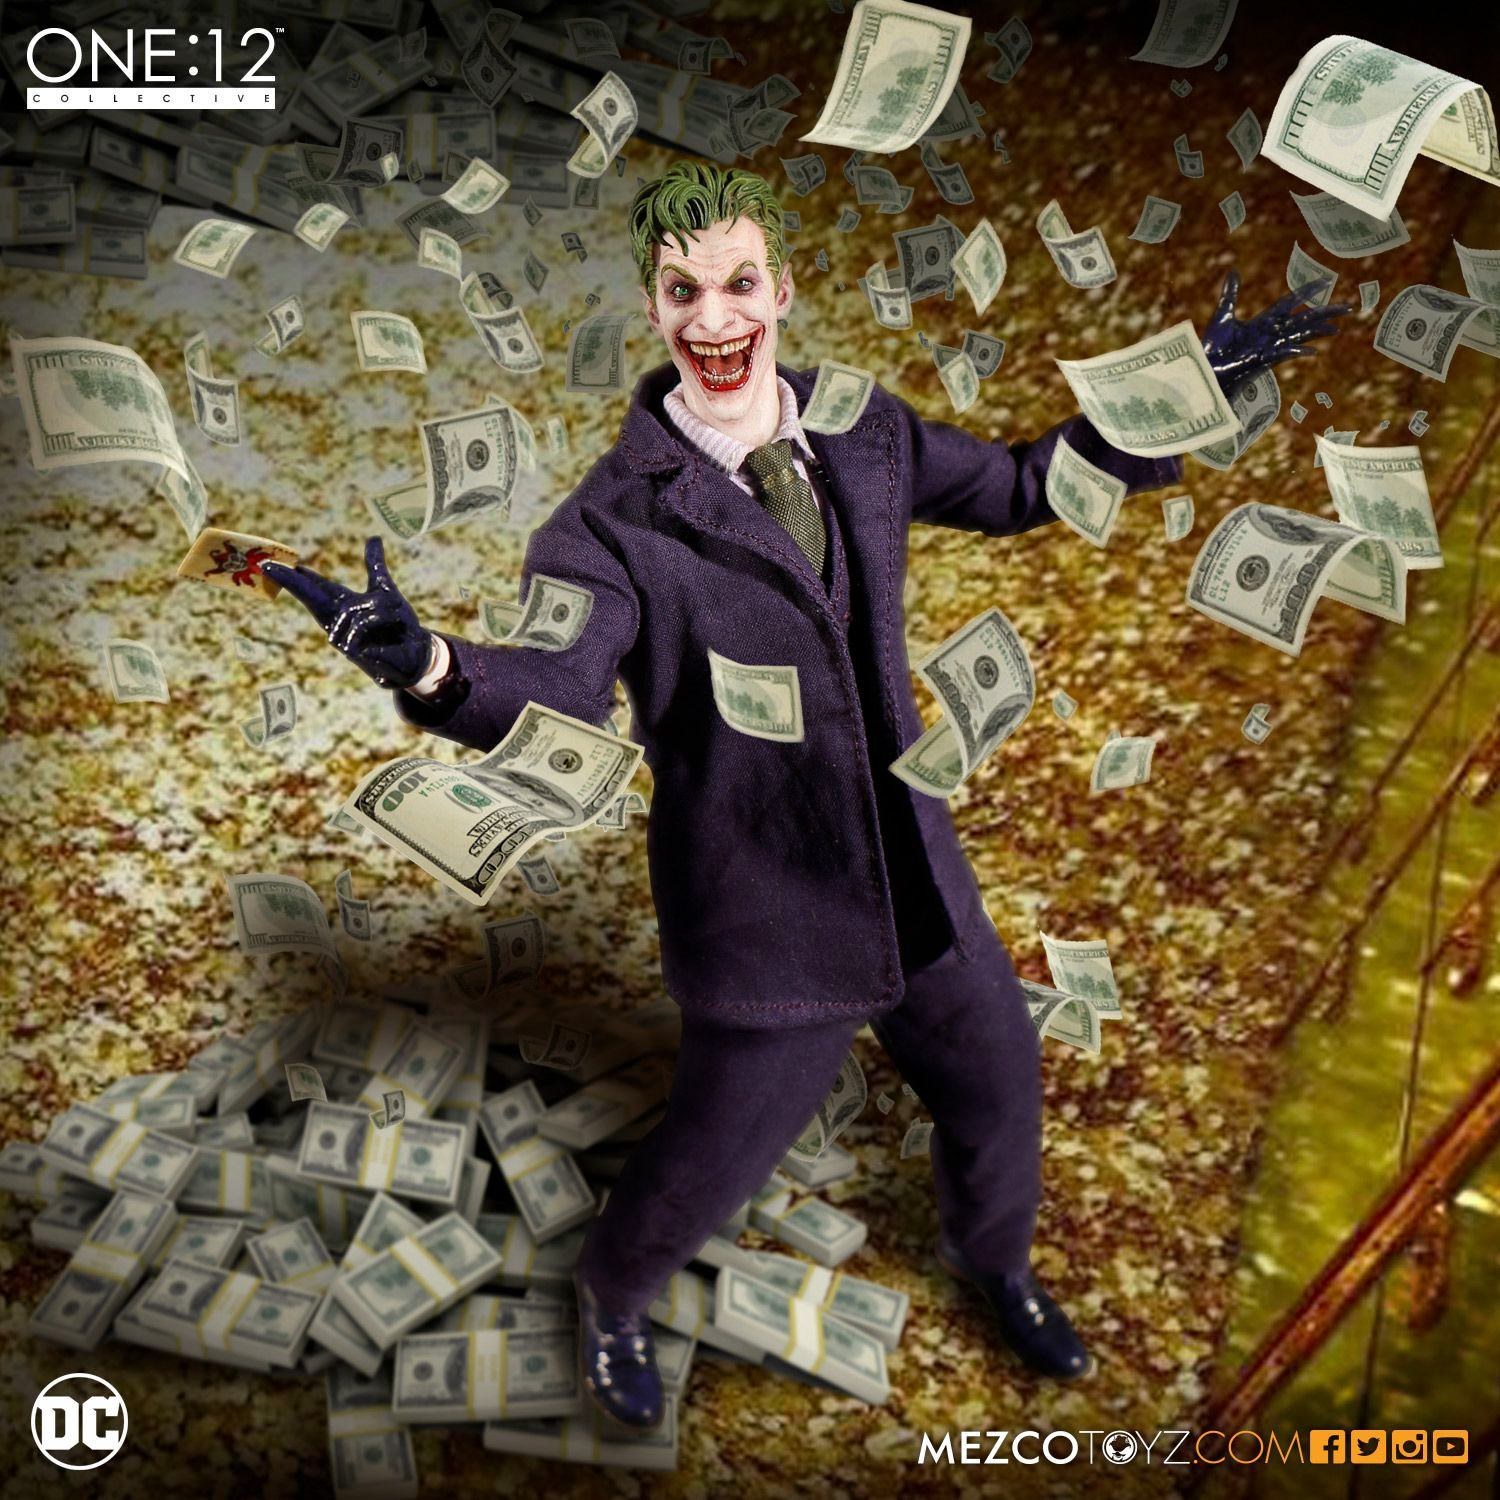 the-joker-one-12-collective-action-figure-05